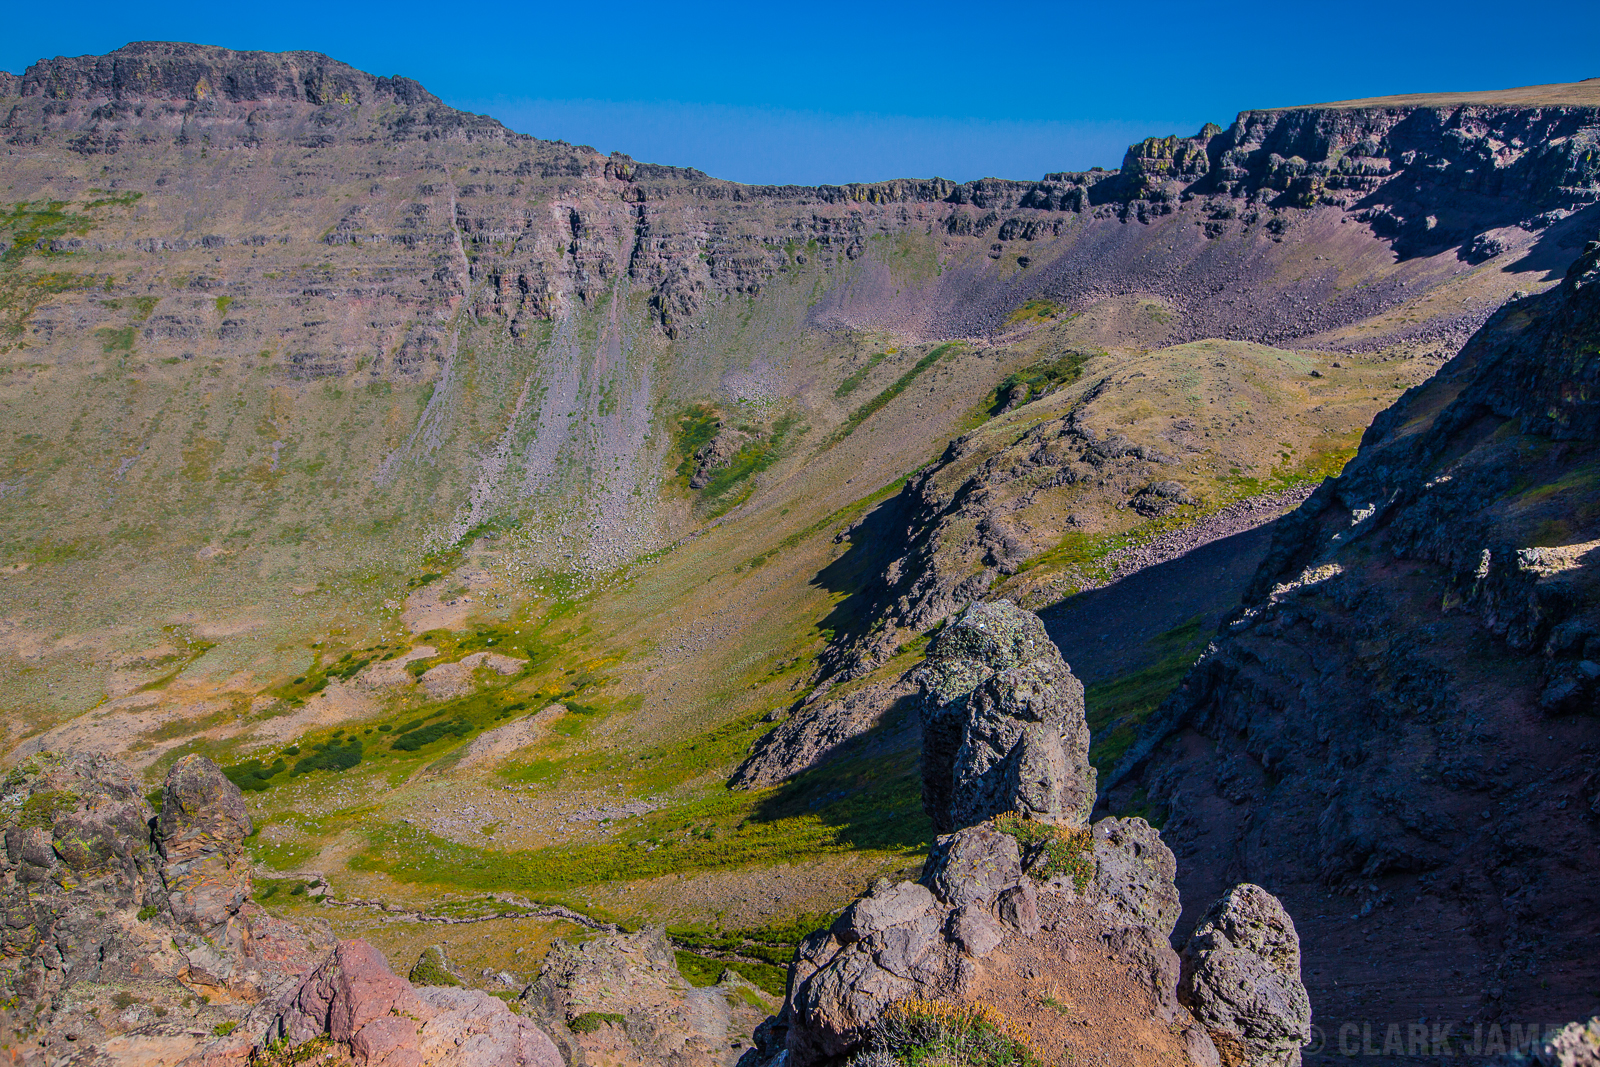 STEENS MOUNTAINS LOOKING EAST